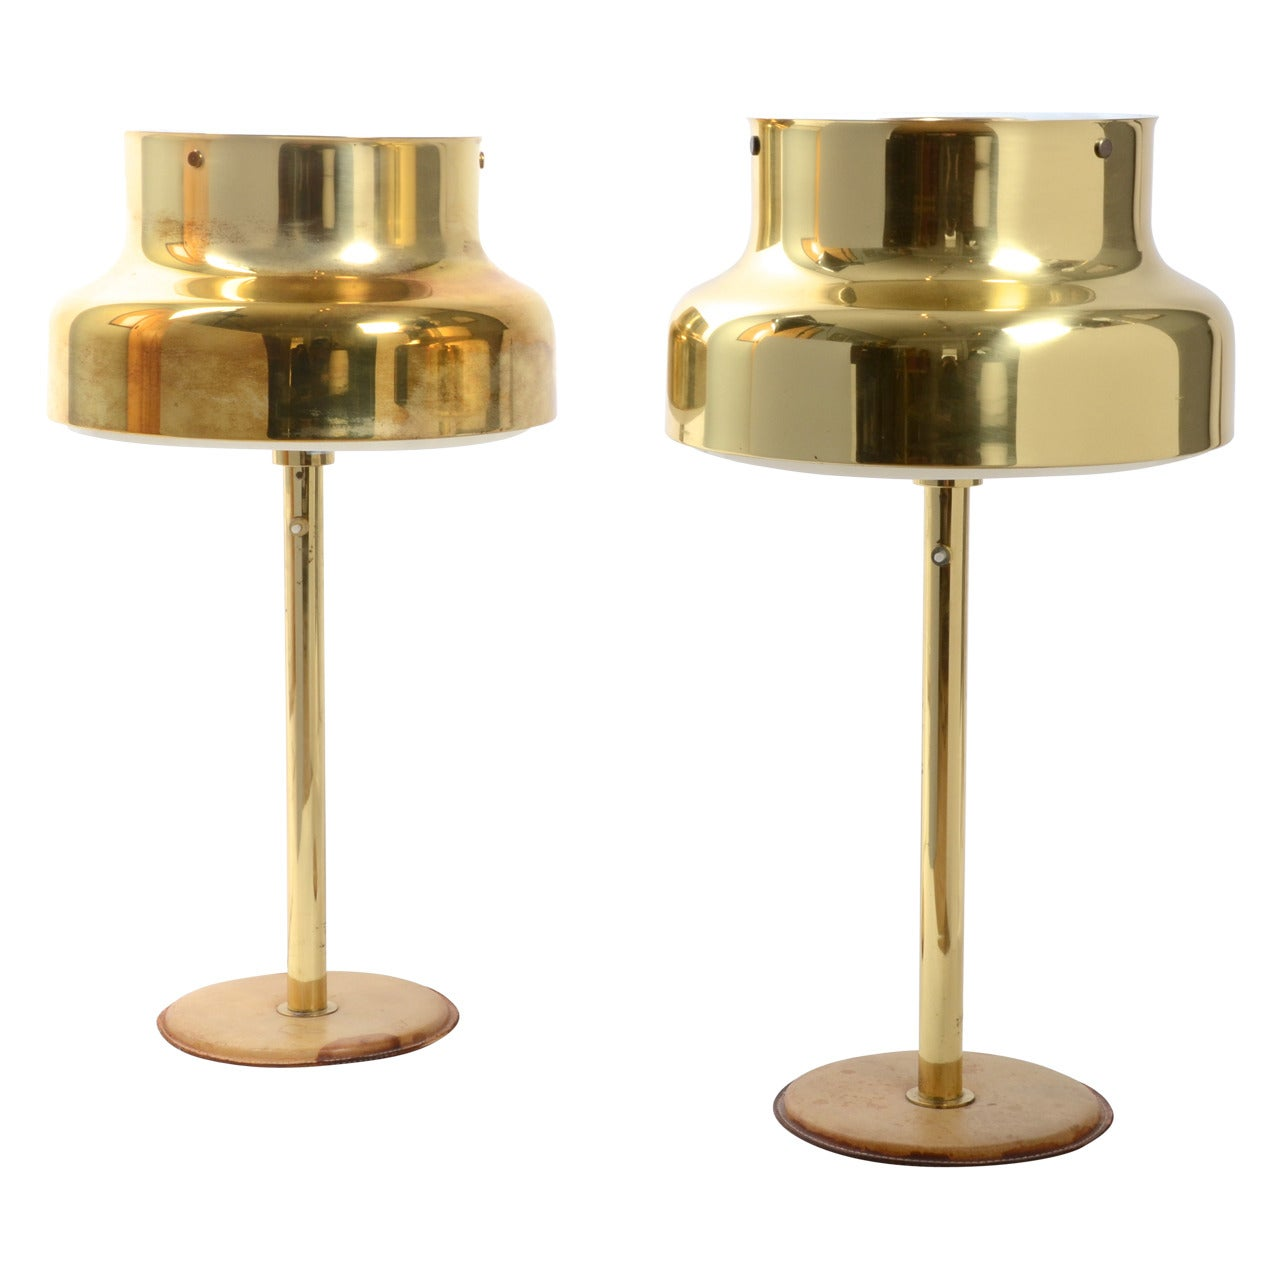 Table Lamps, Brass and Leather, Ateljé Lyktan, Sweden, 1960s